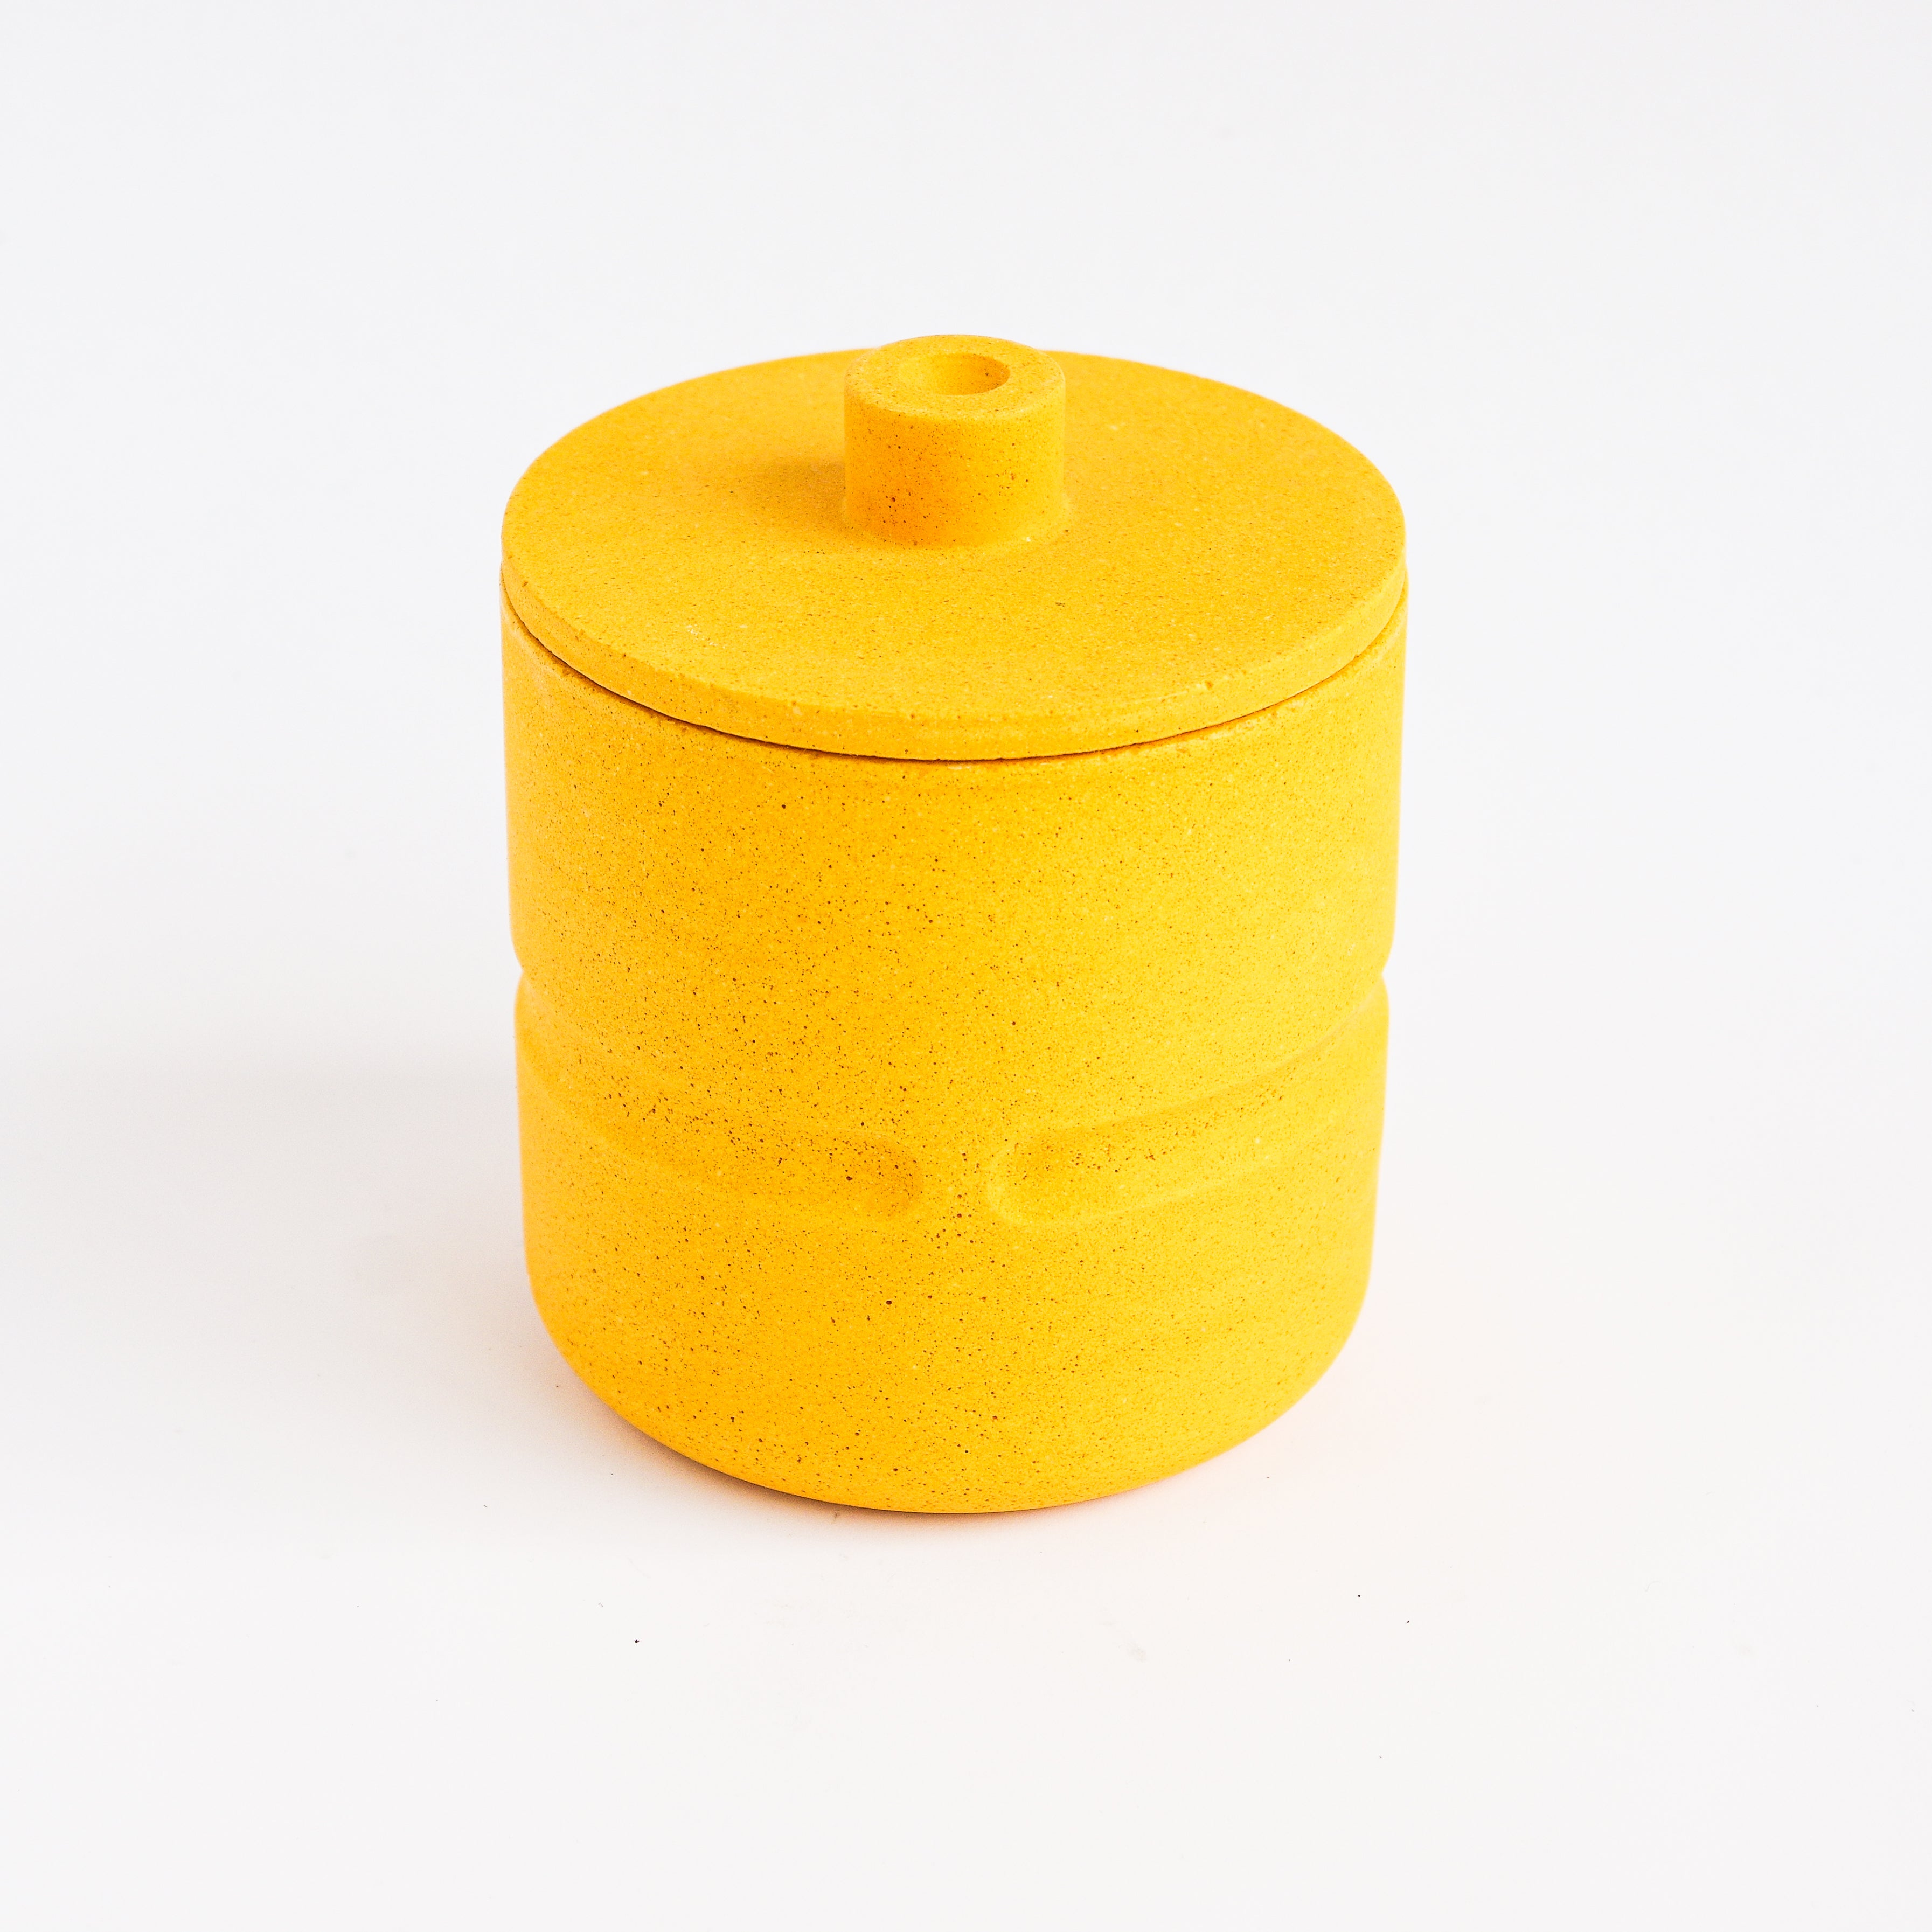 Lid for Chubby Pot in Mustard Yellow